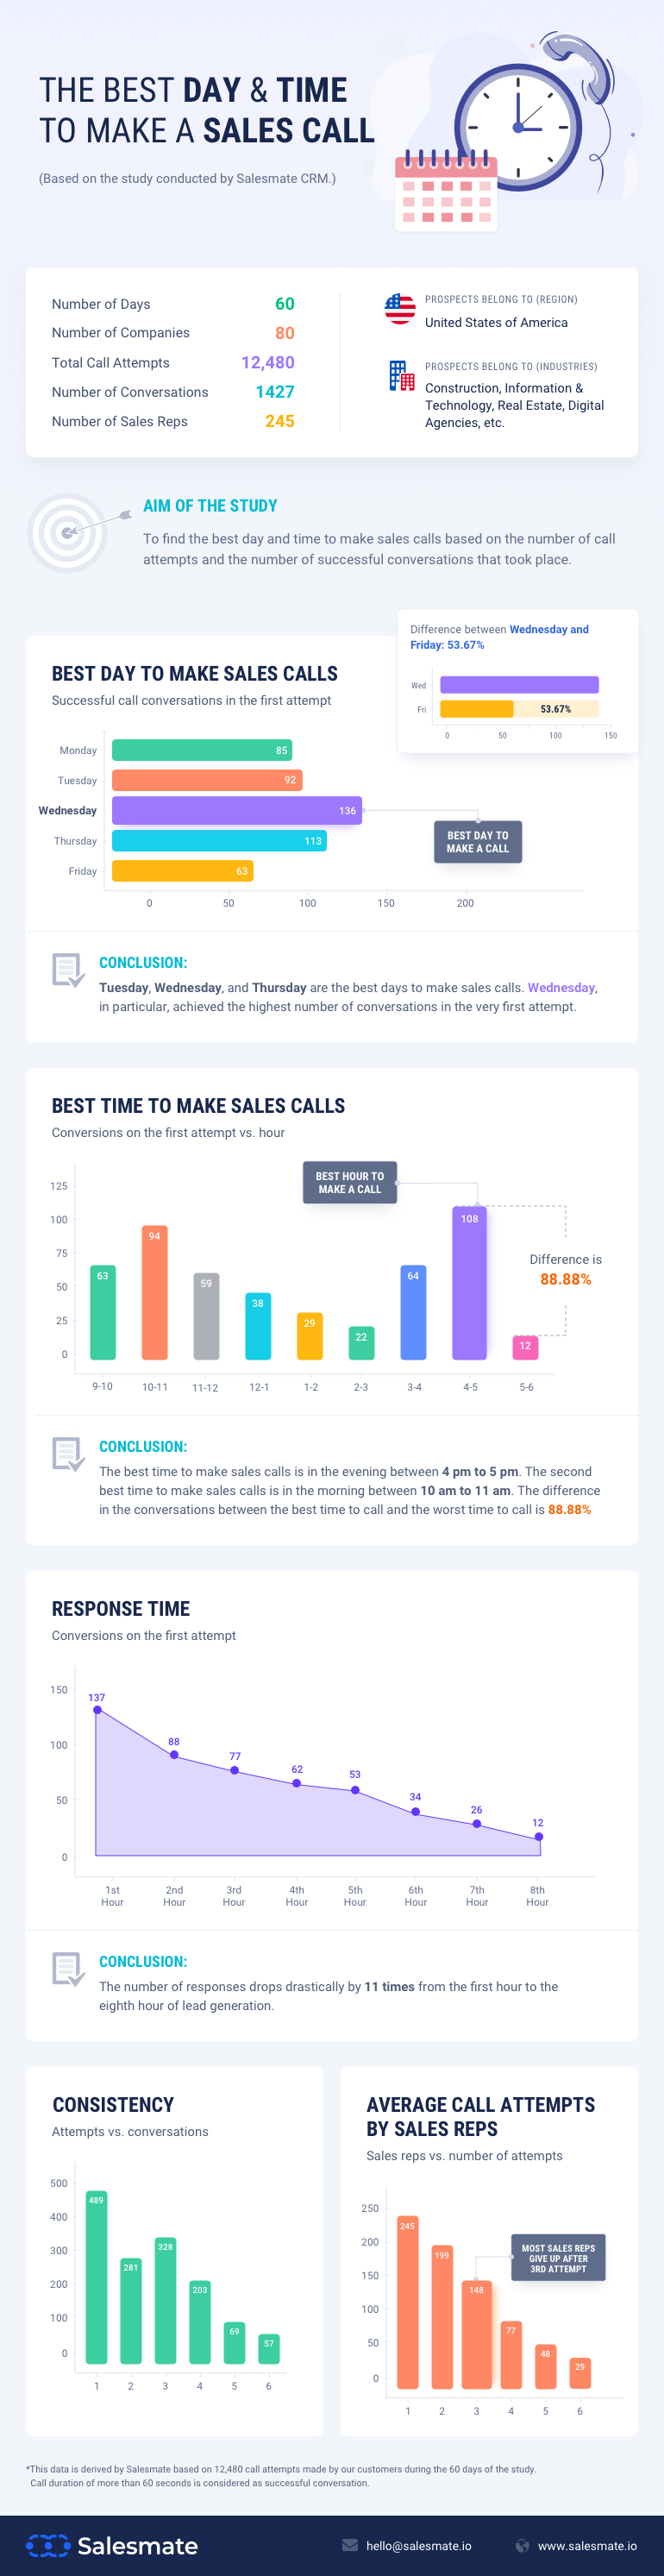 The Best Day & Time To Make a Sales Call #infographic